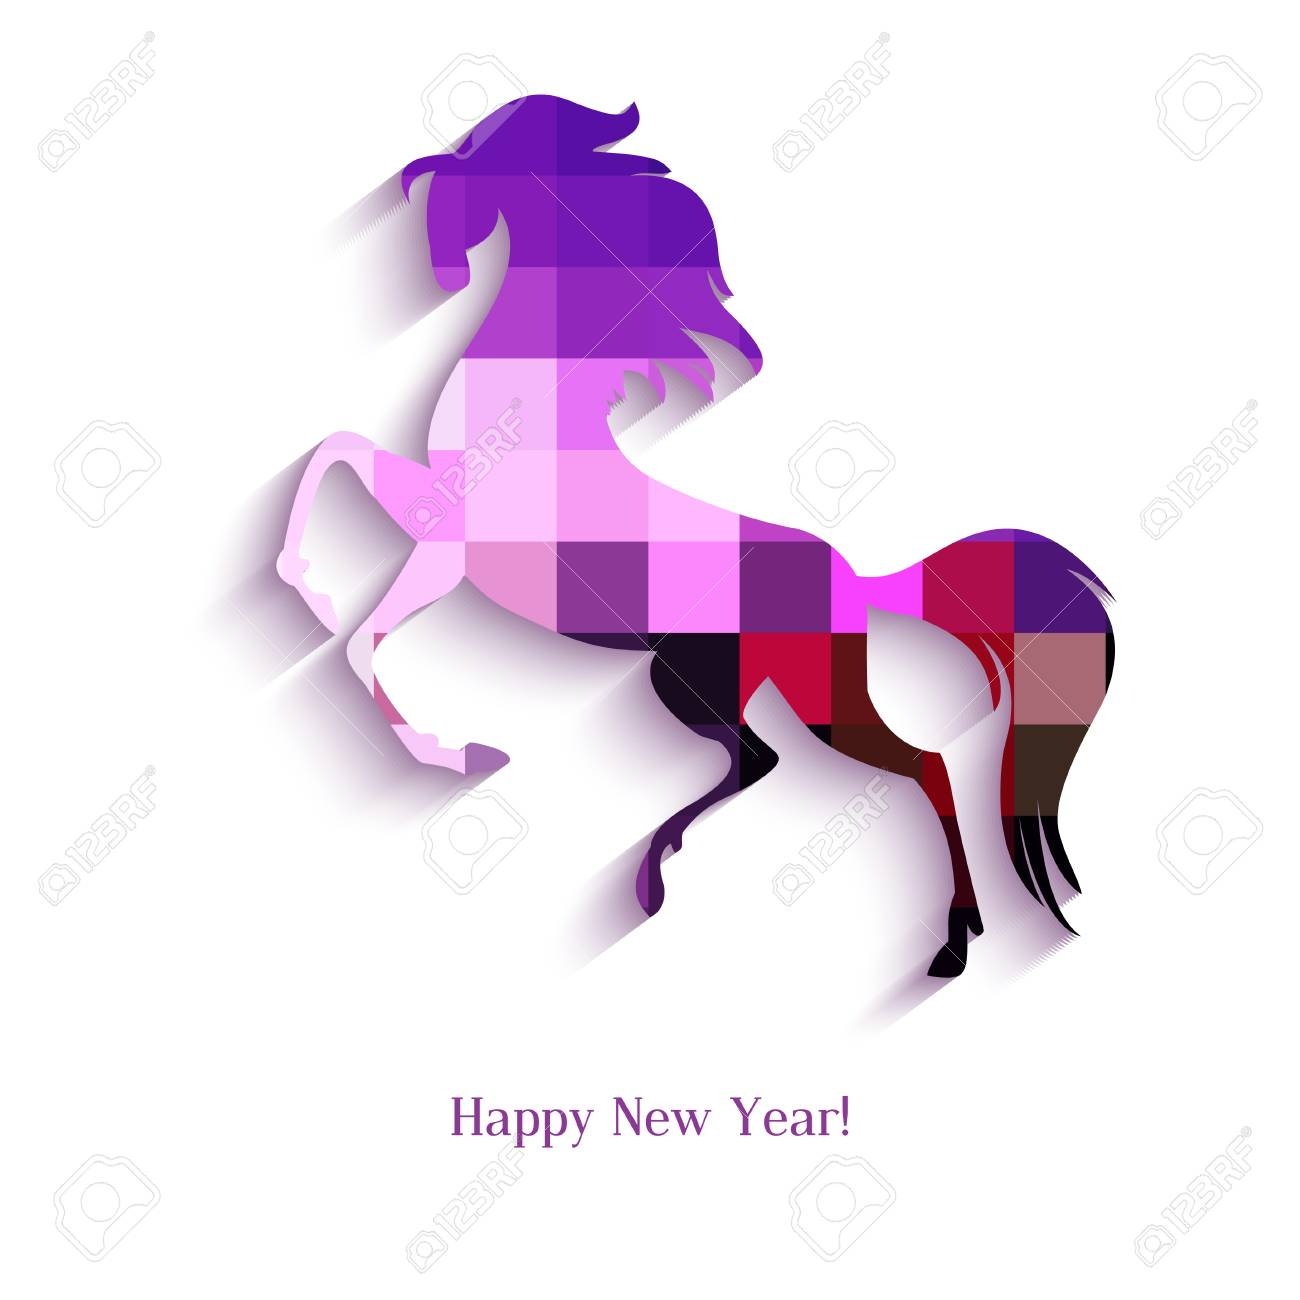 New Year symbol of horse - Illustration, vector Stock Vector - 23552121